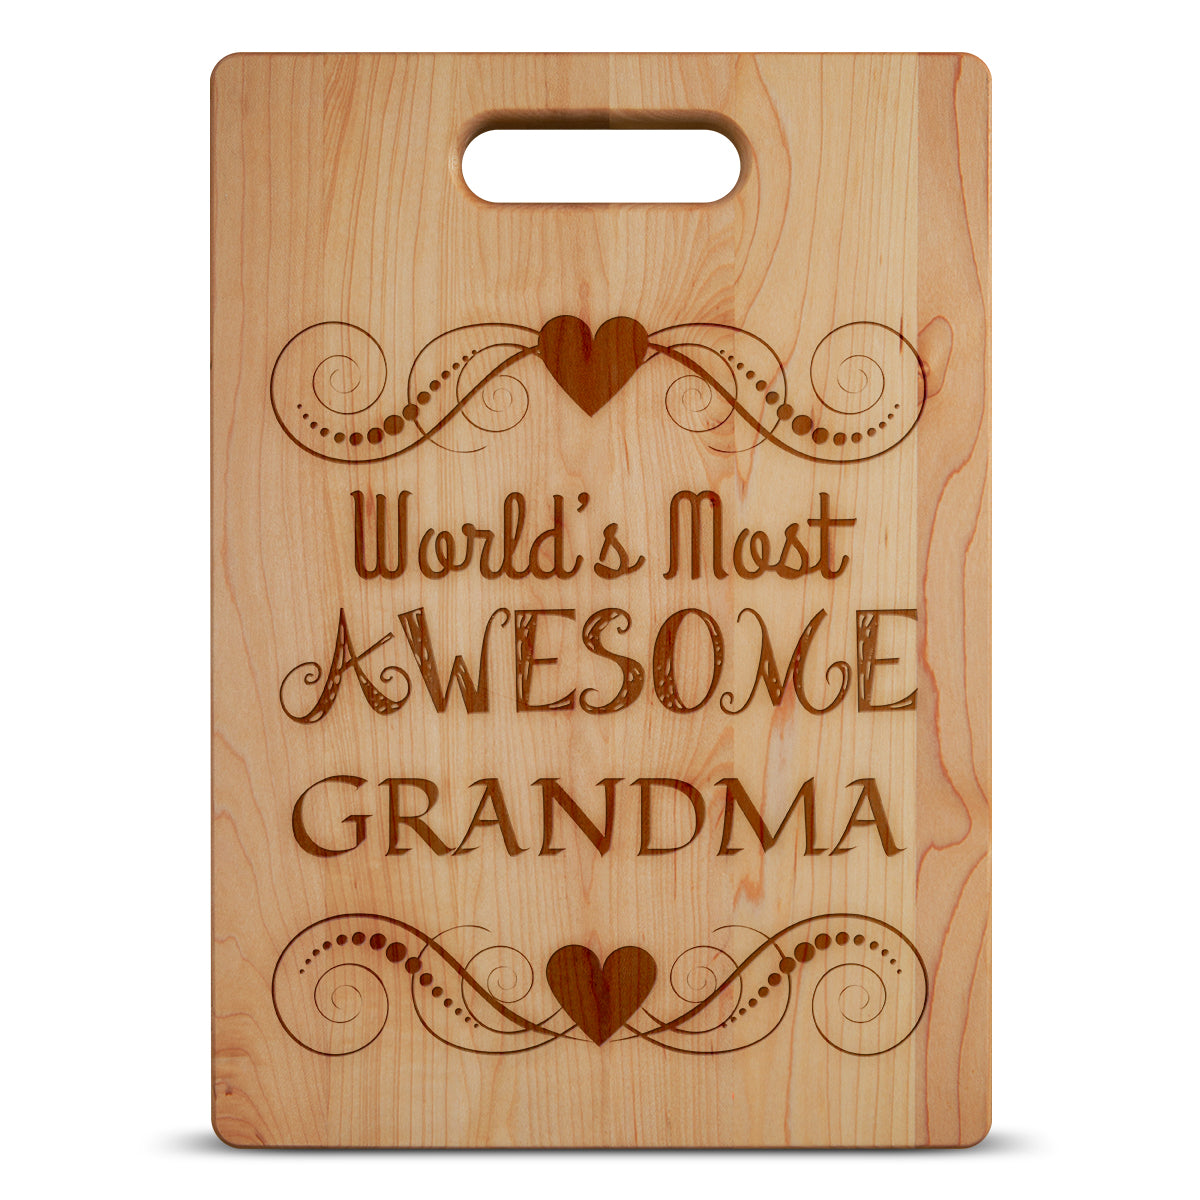 Most Awesome Grandma Cutting Board